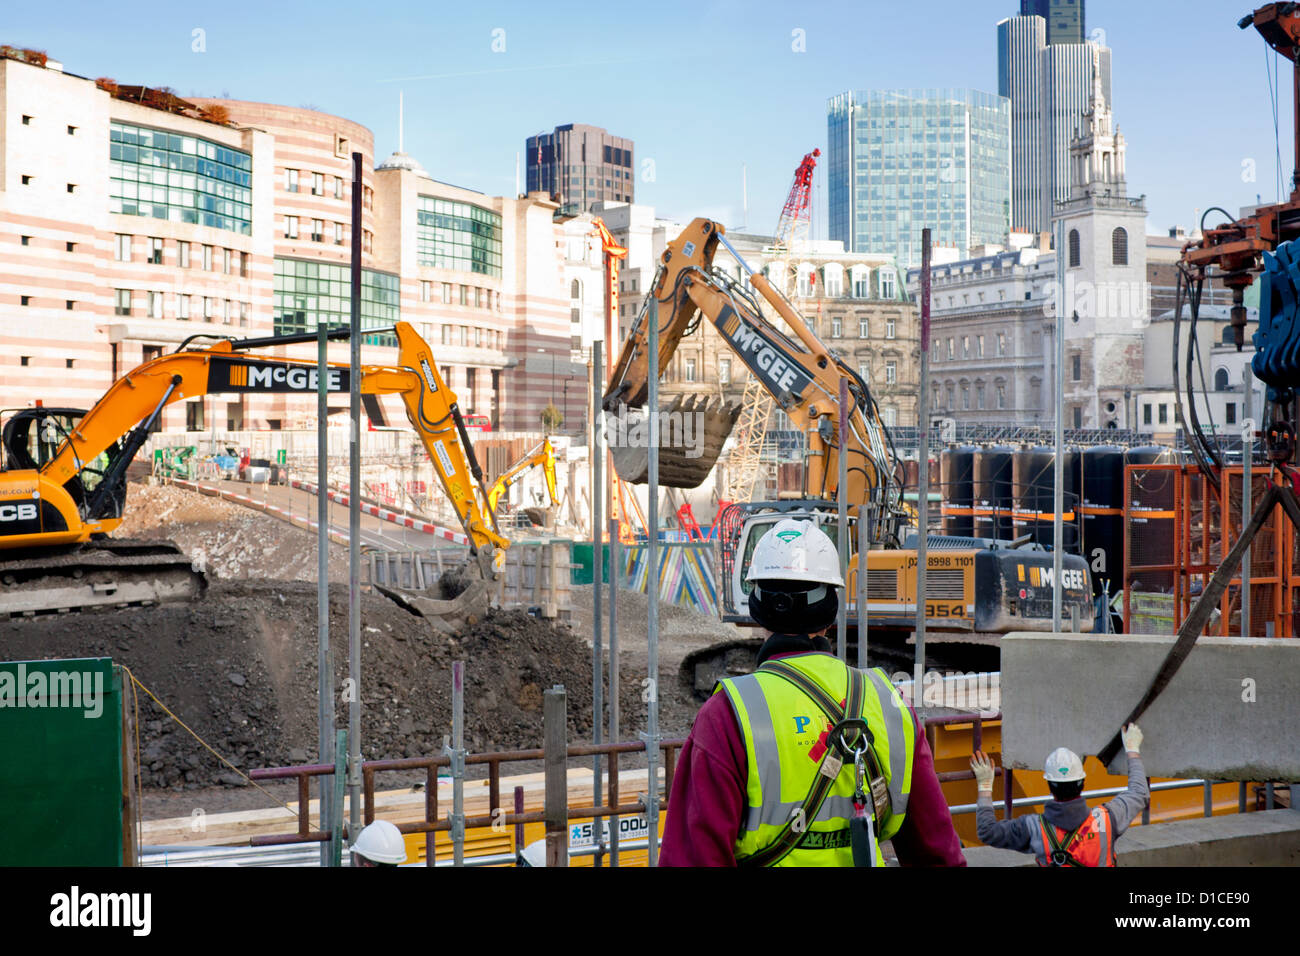 Bloomberg HQ construction site Cannon Street City of London England UK - Stock Image